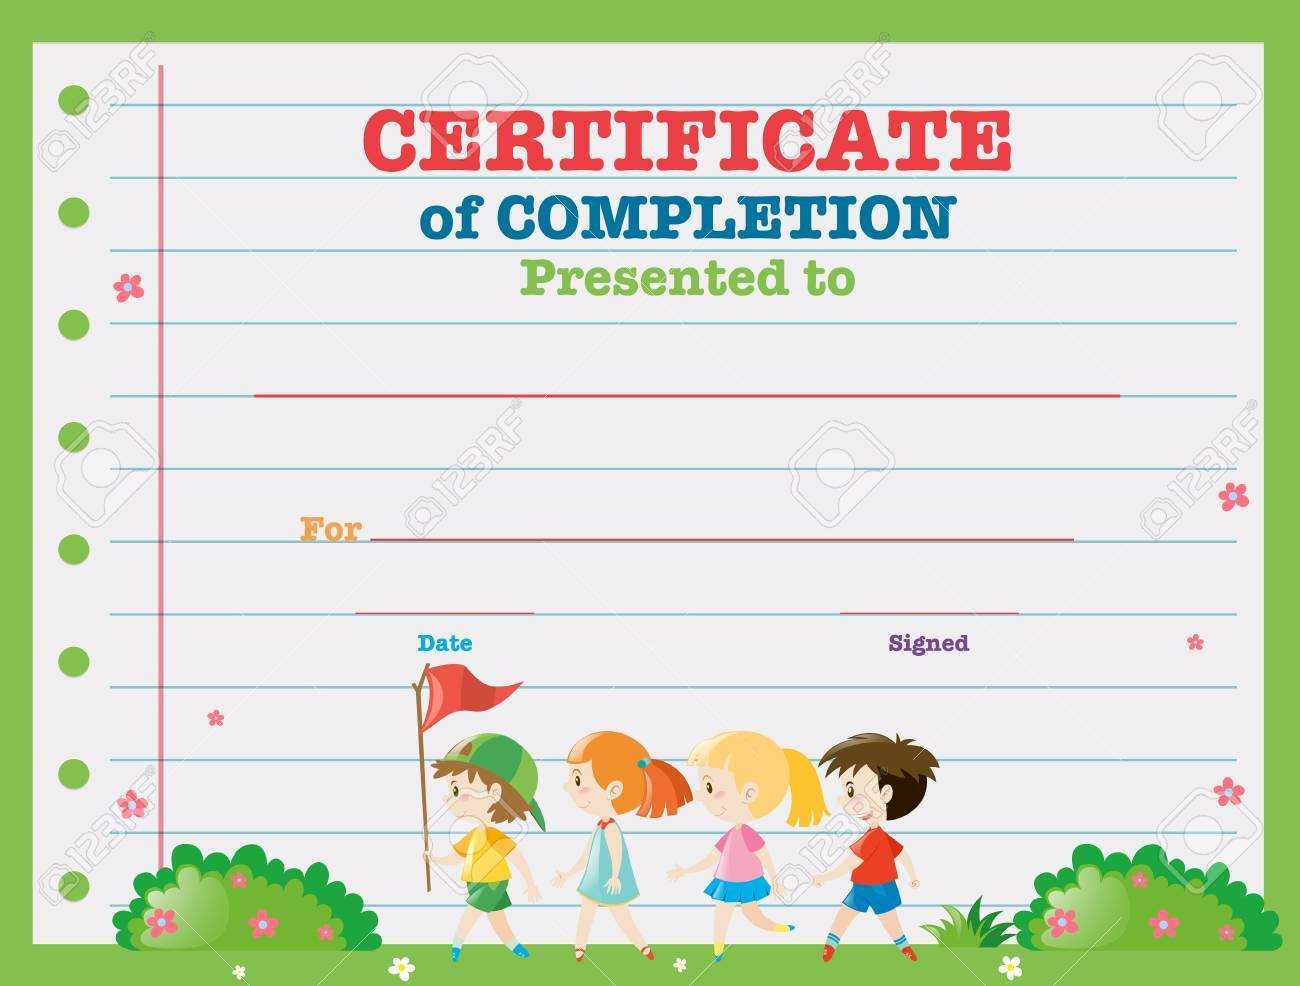 Certificate Template With Kids Walking In The Park Illustration In Walking Certificate Templates